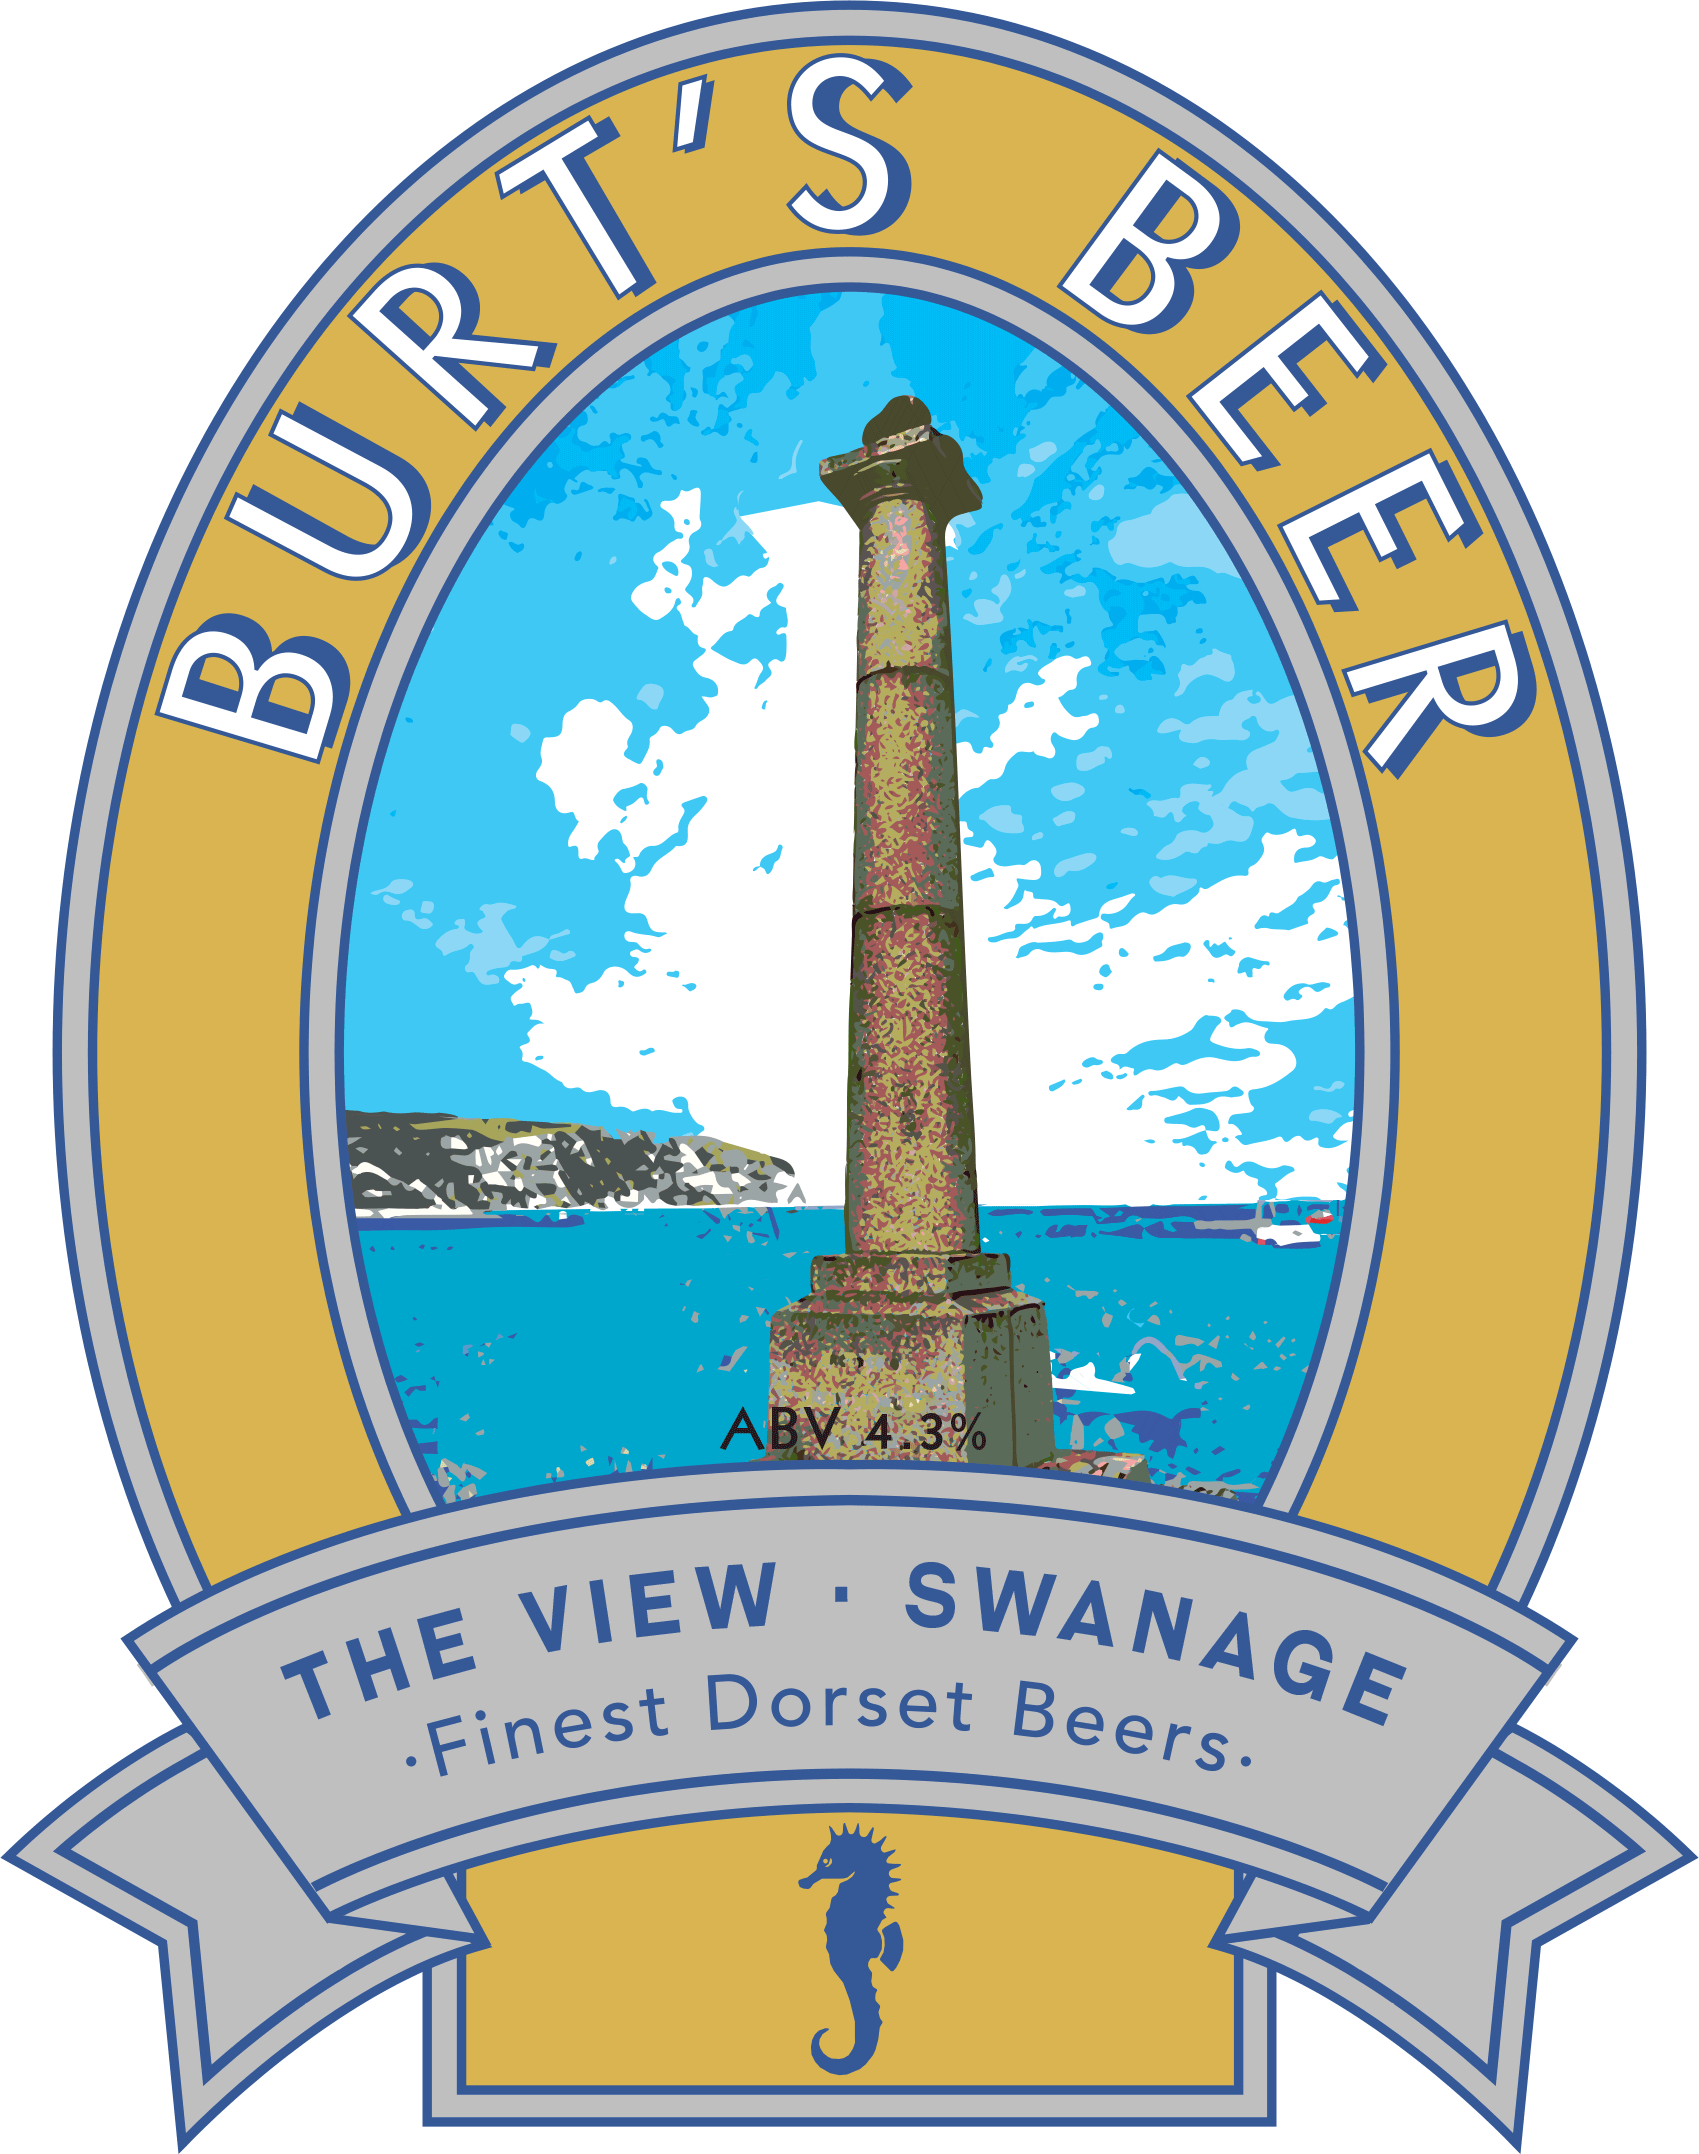 Isle of Purbeck Brewery Burt's Beer pumpclip PNG